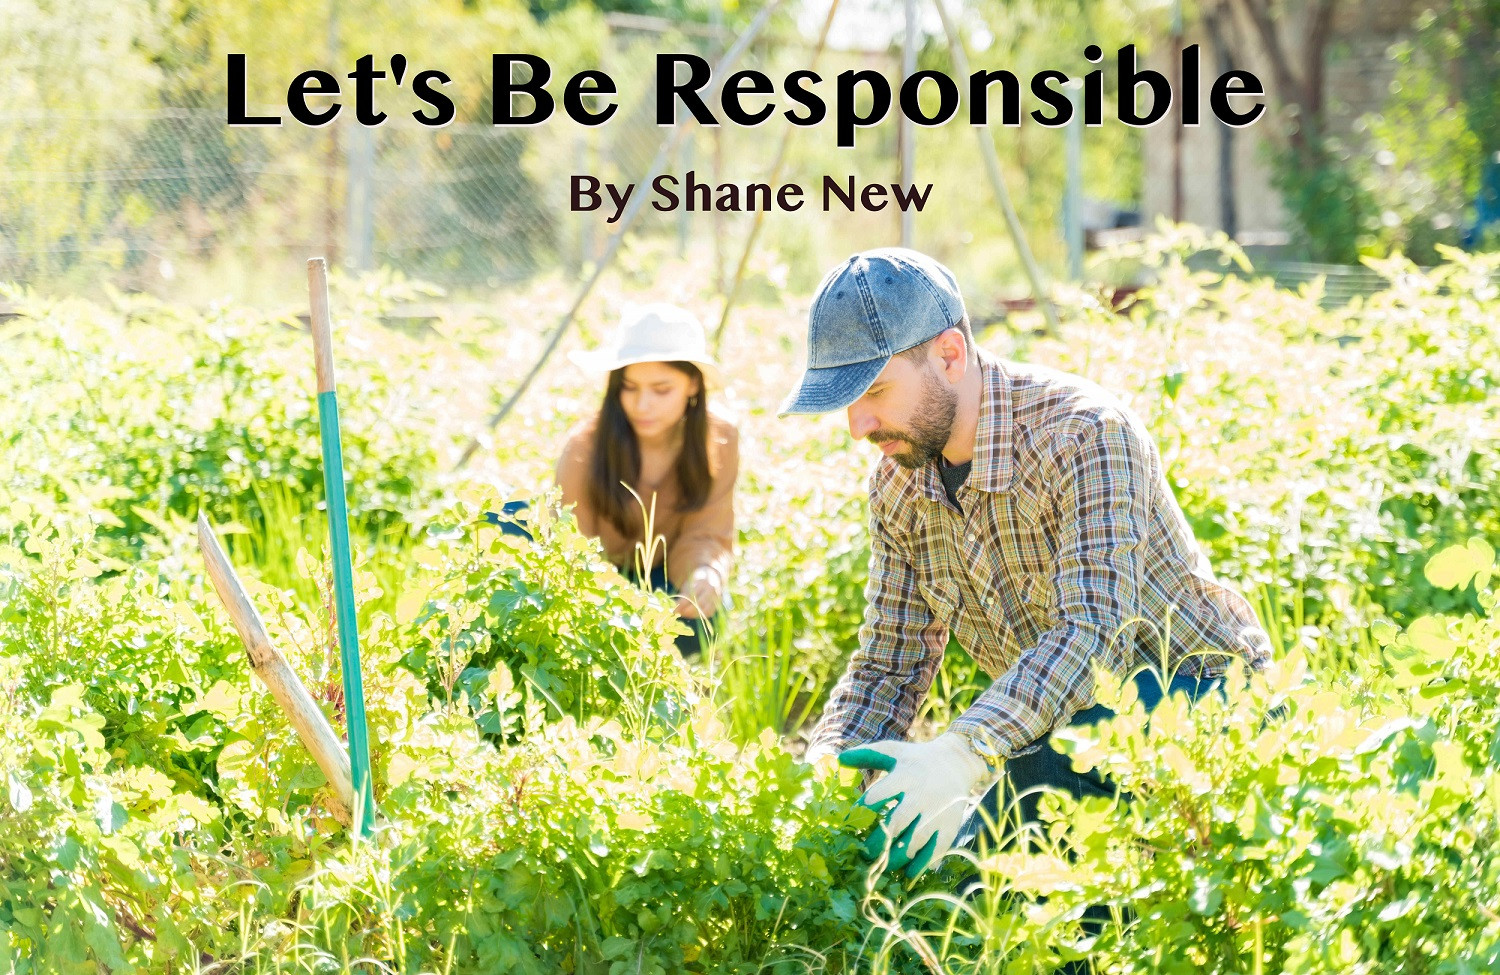 Let's be Responsible